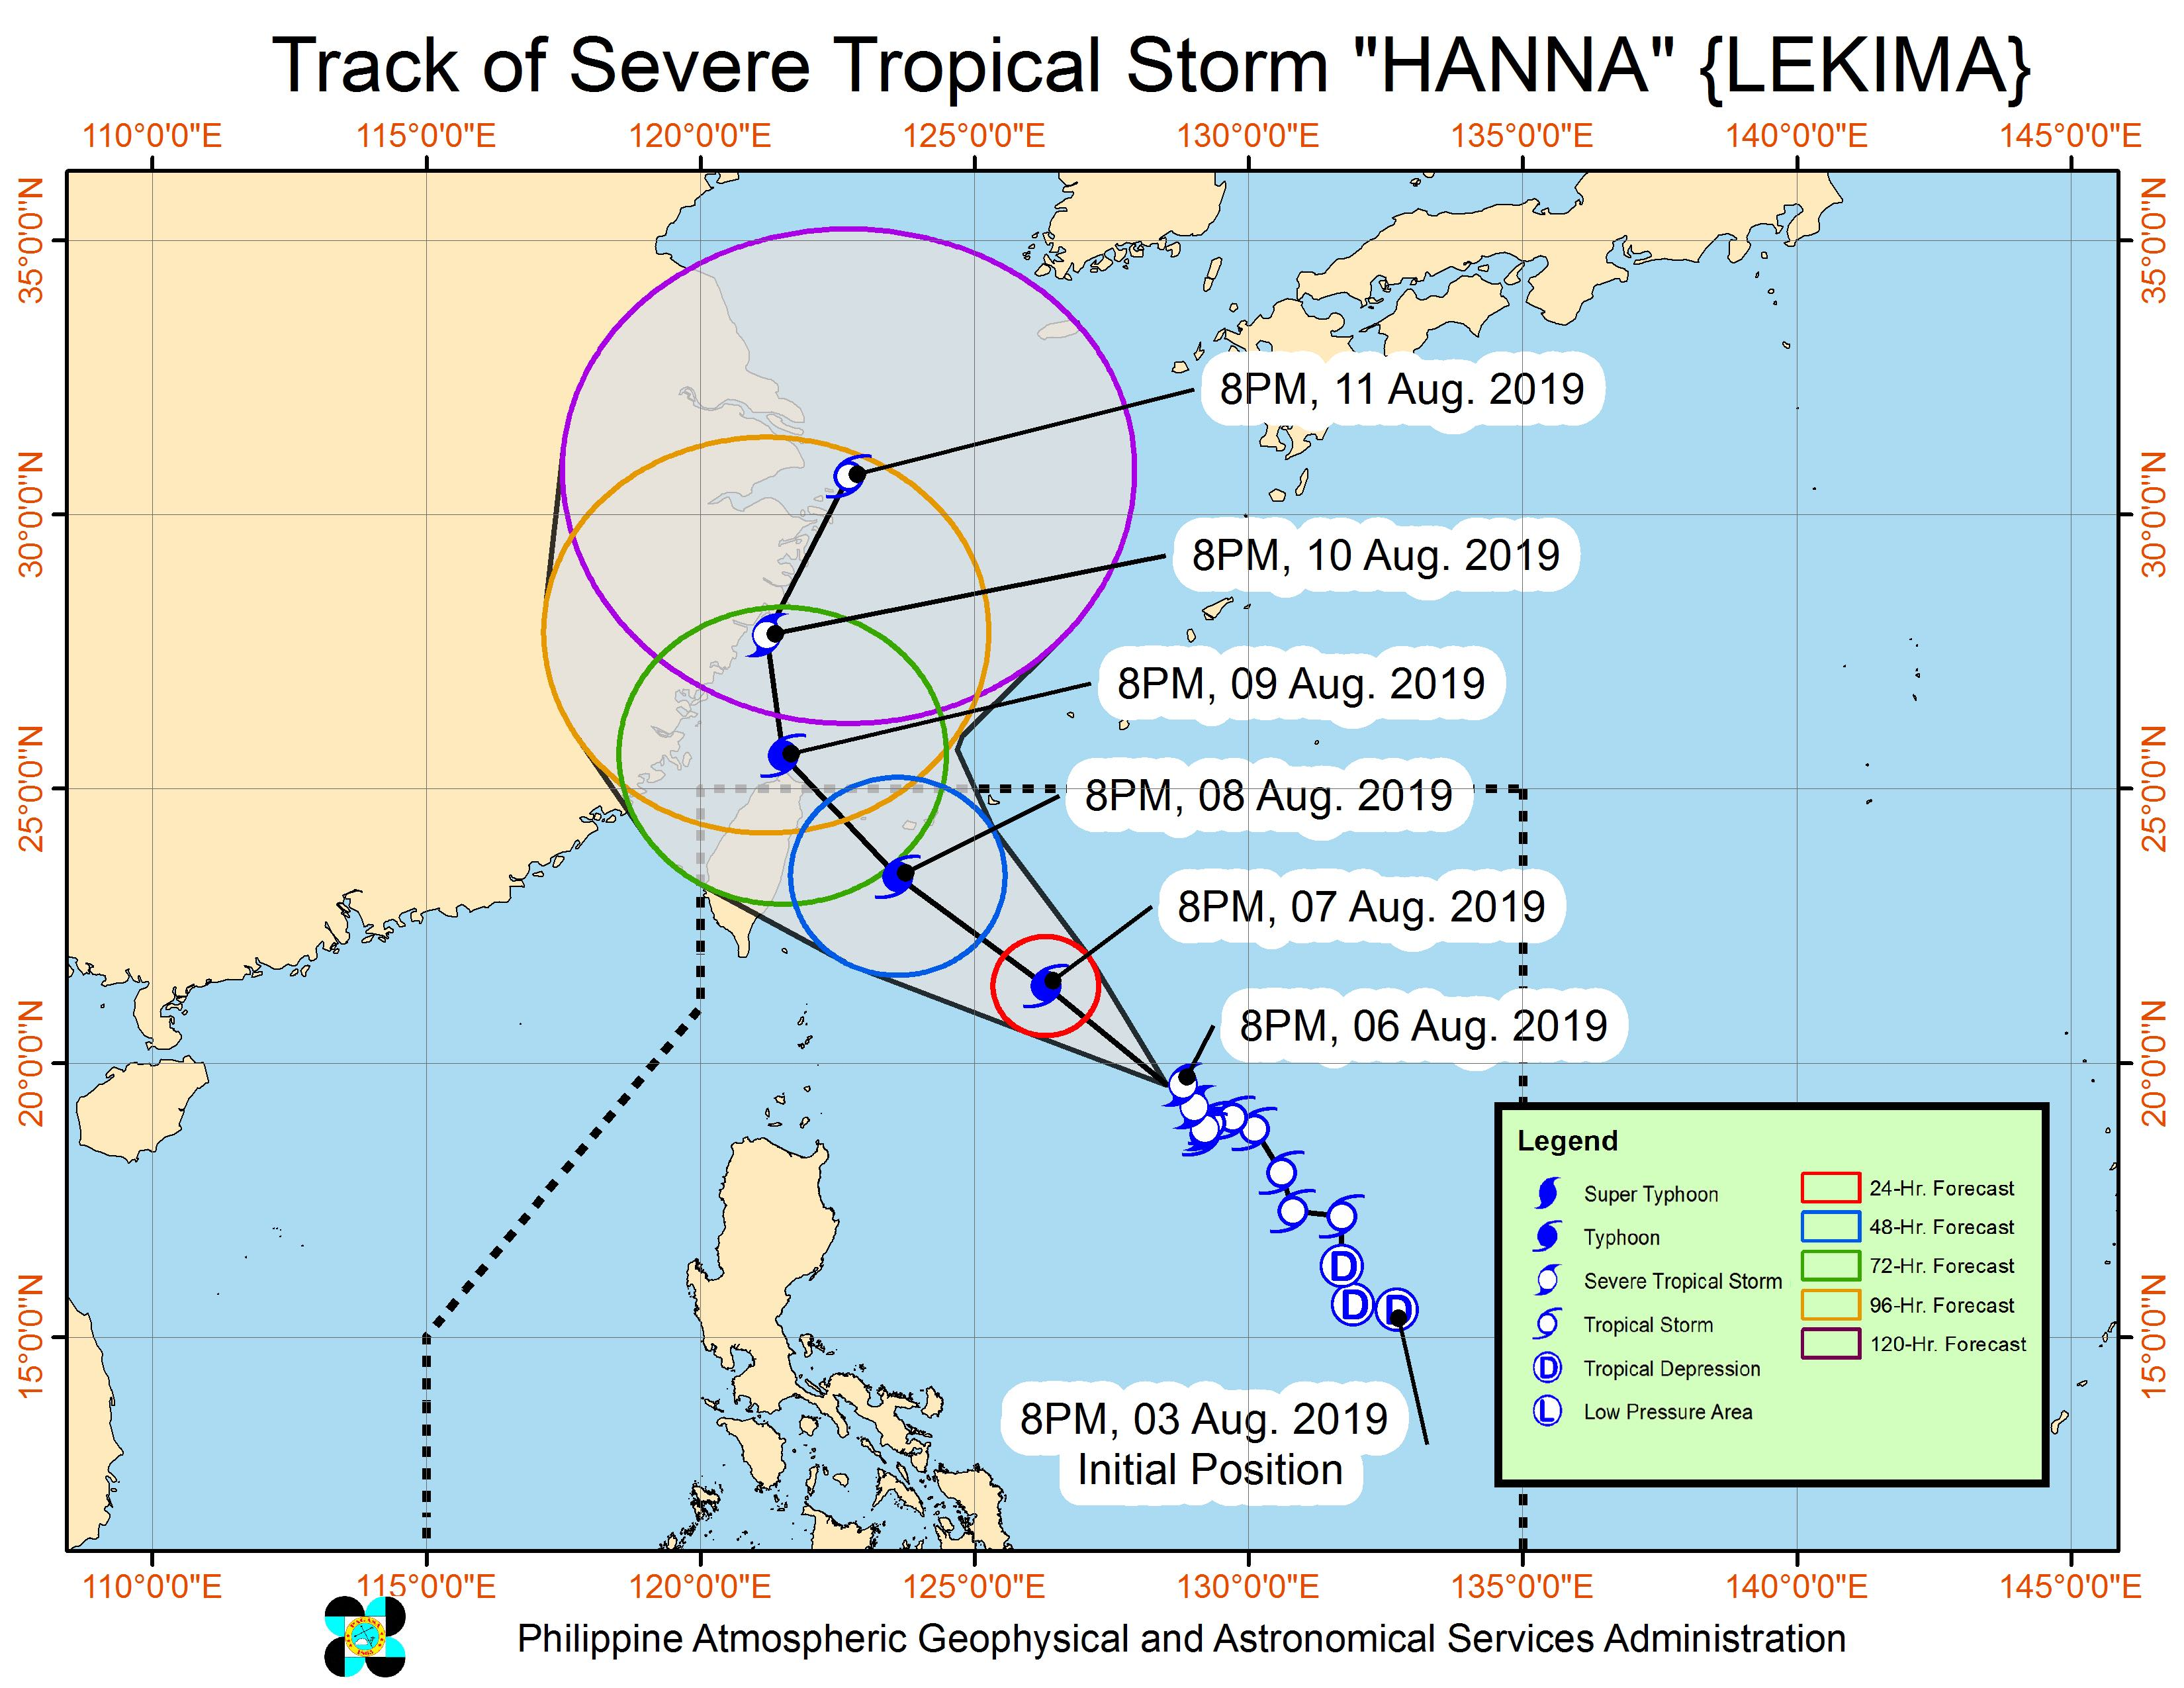 Forecast track of Severe Tropical Storm Hanna (Lekima) as of August 6, 2019, 11 pm. Image from PAGASA